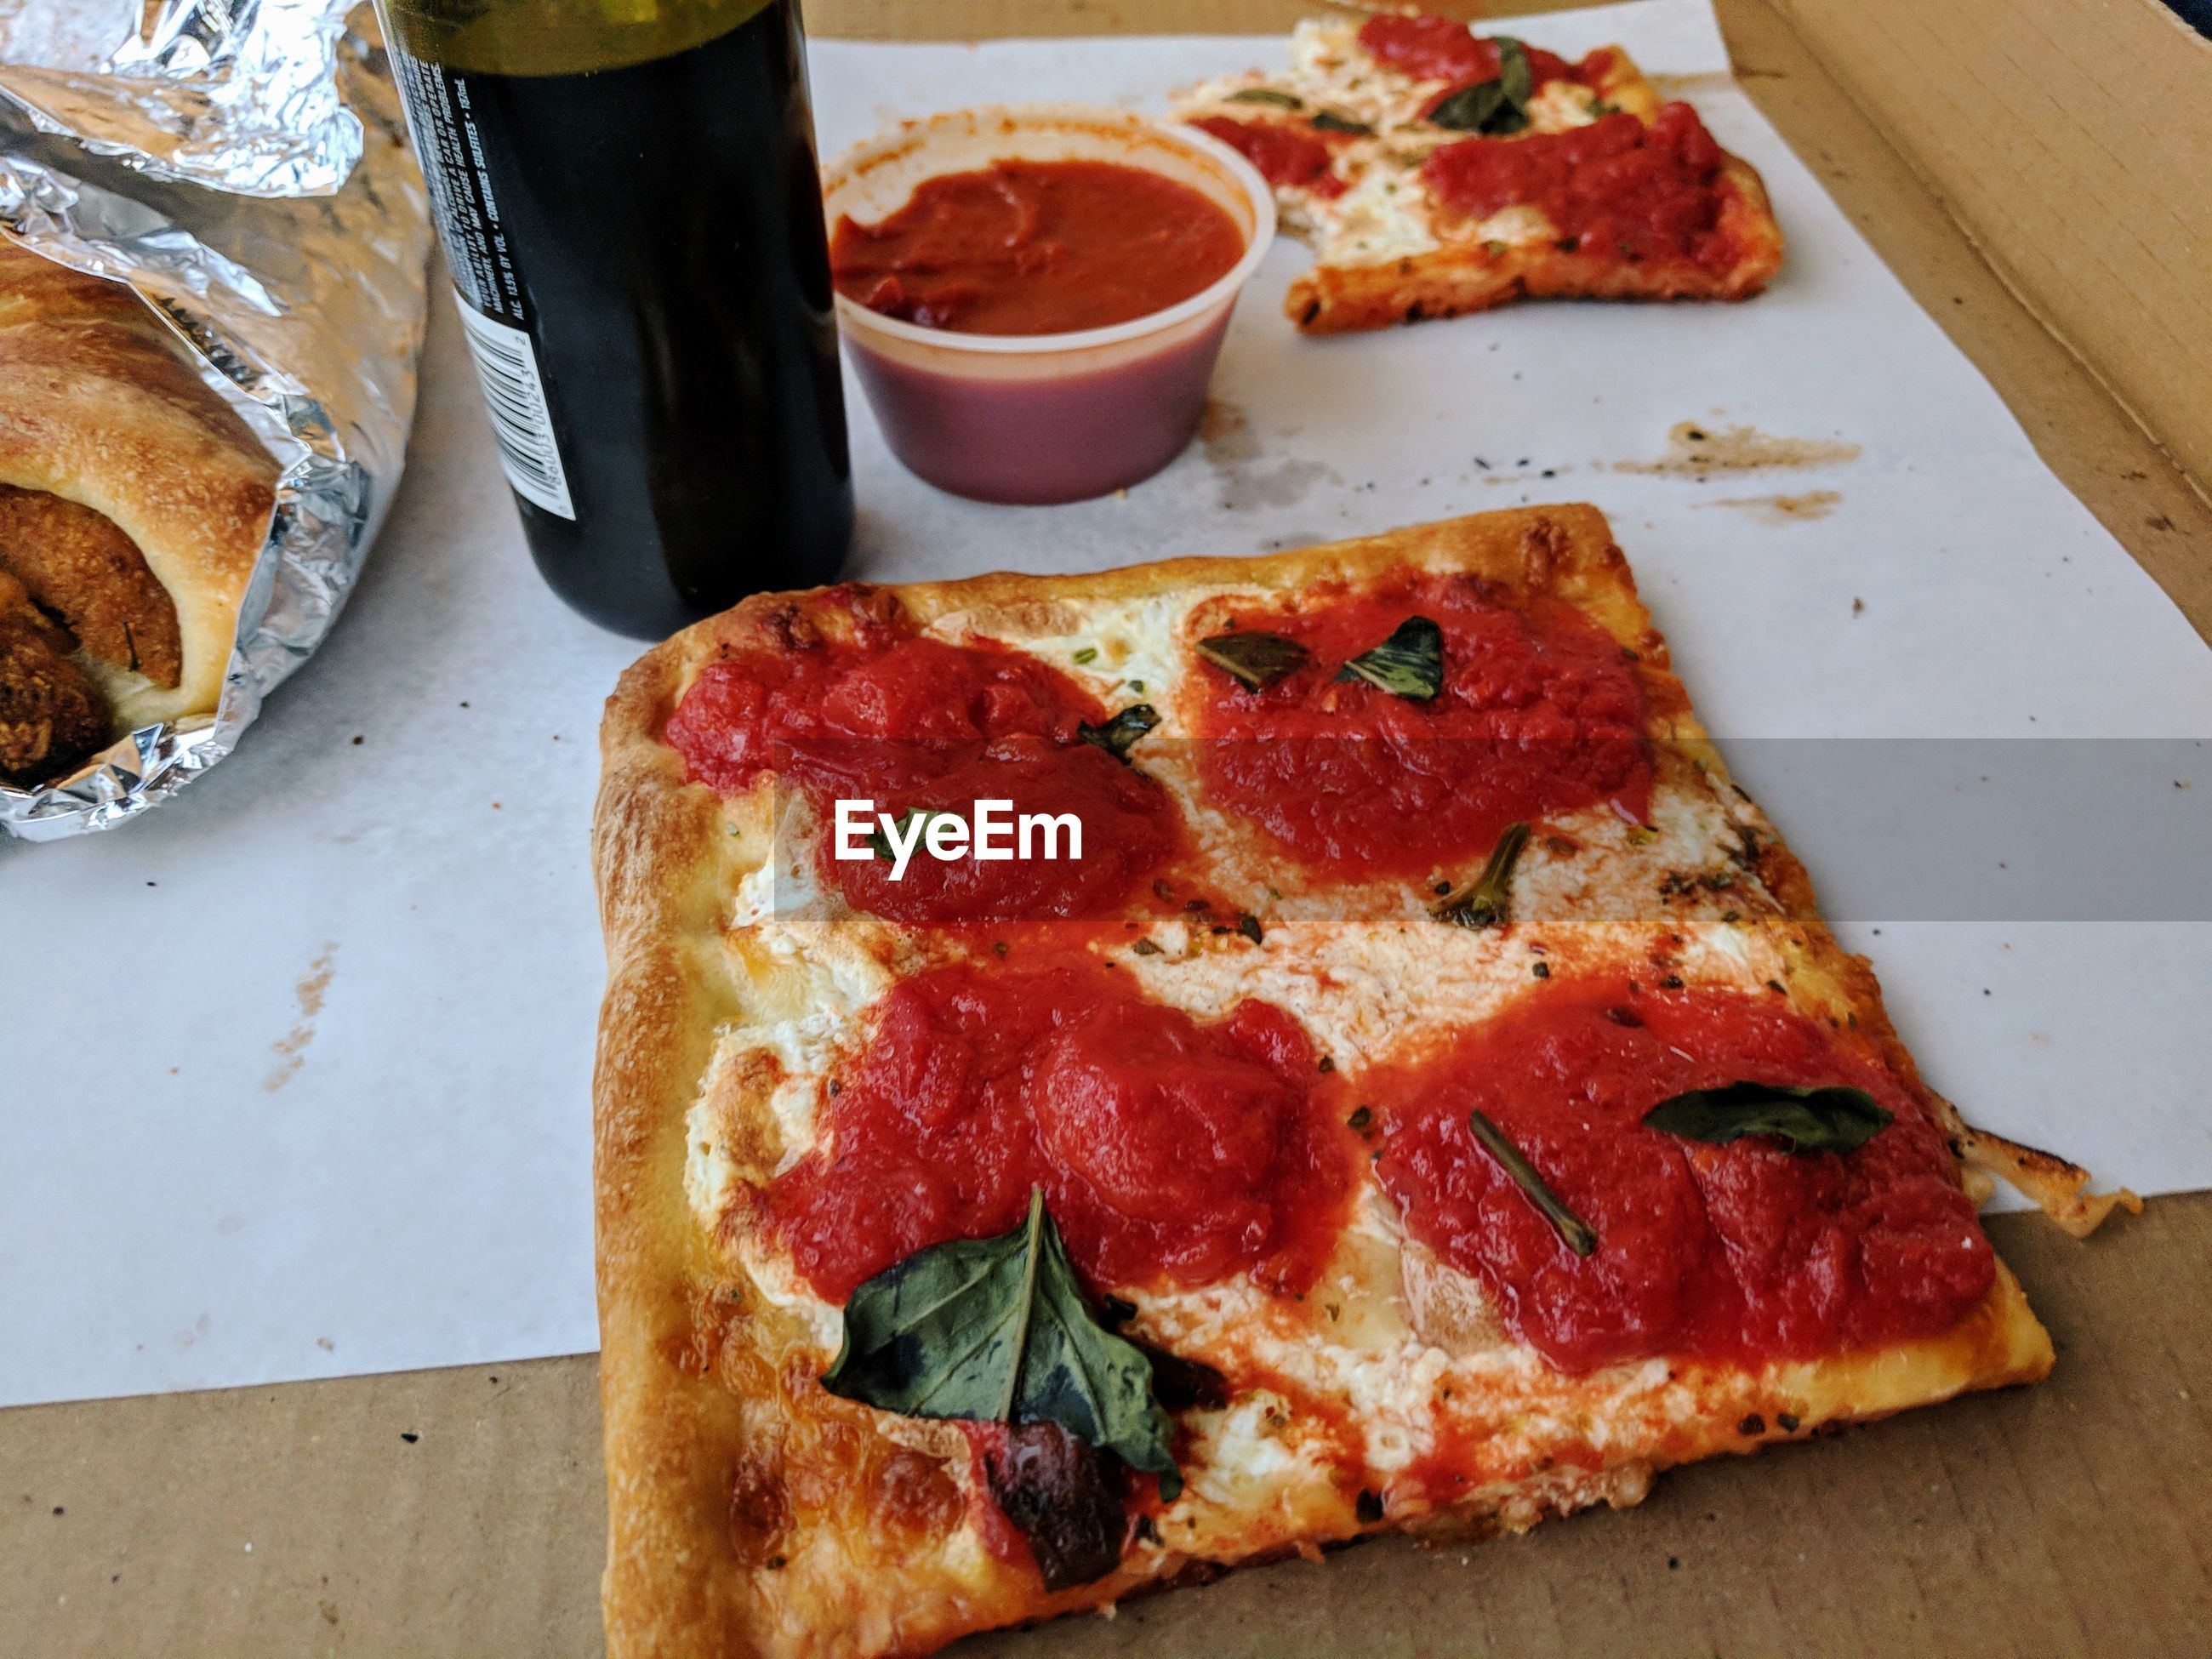 HIGH ANGLE VIEW OF PIZZA AND BREAD ON TABLE